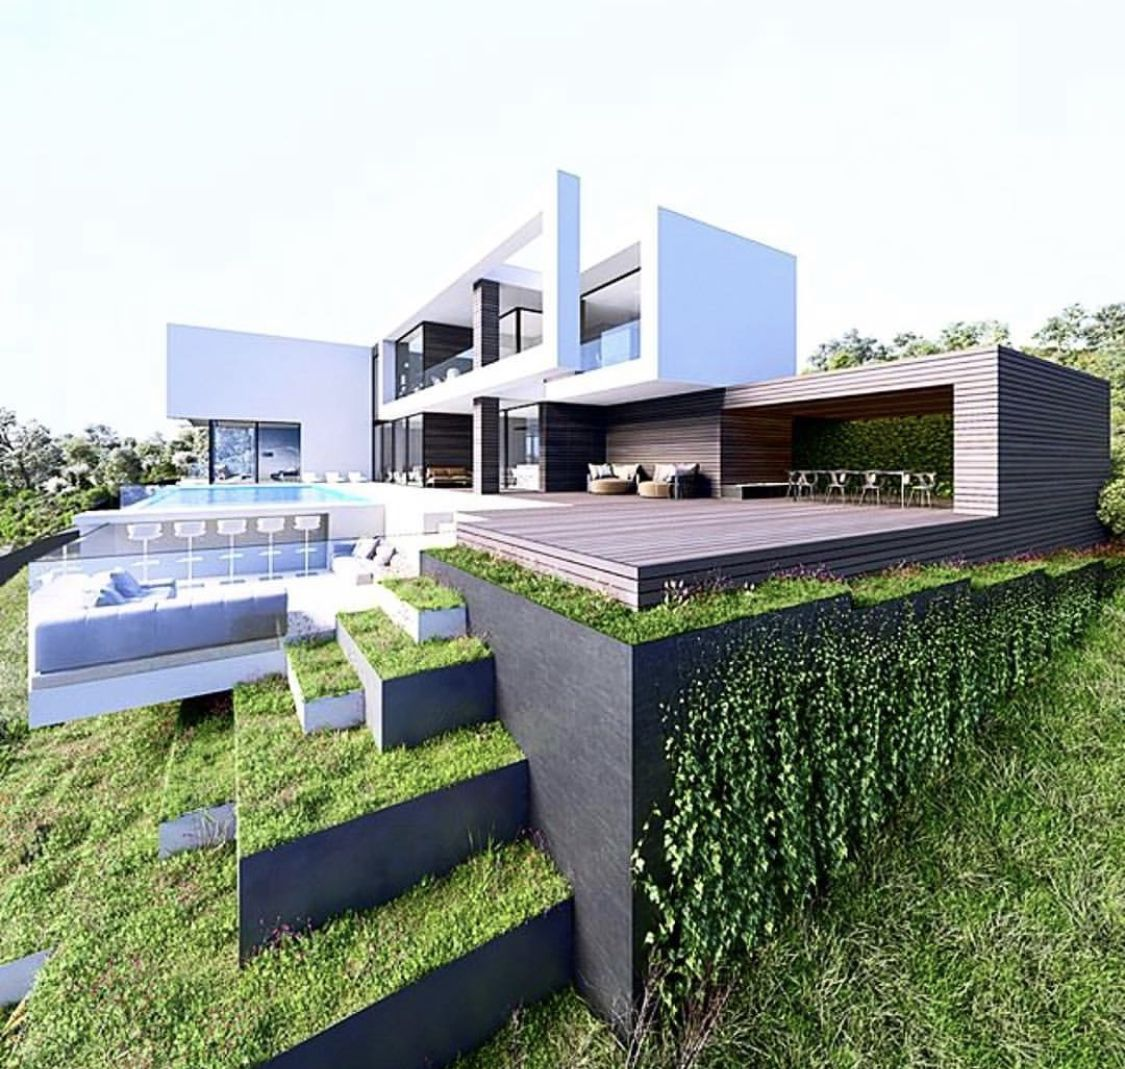 Pin By Sergio Santos On House House Designs Exterior Dream House Exterior Architecture